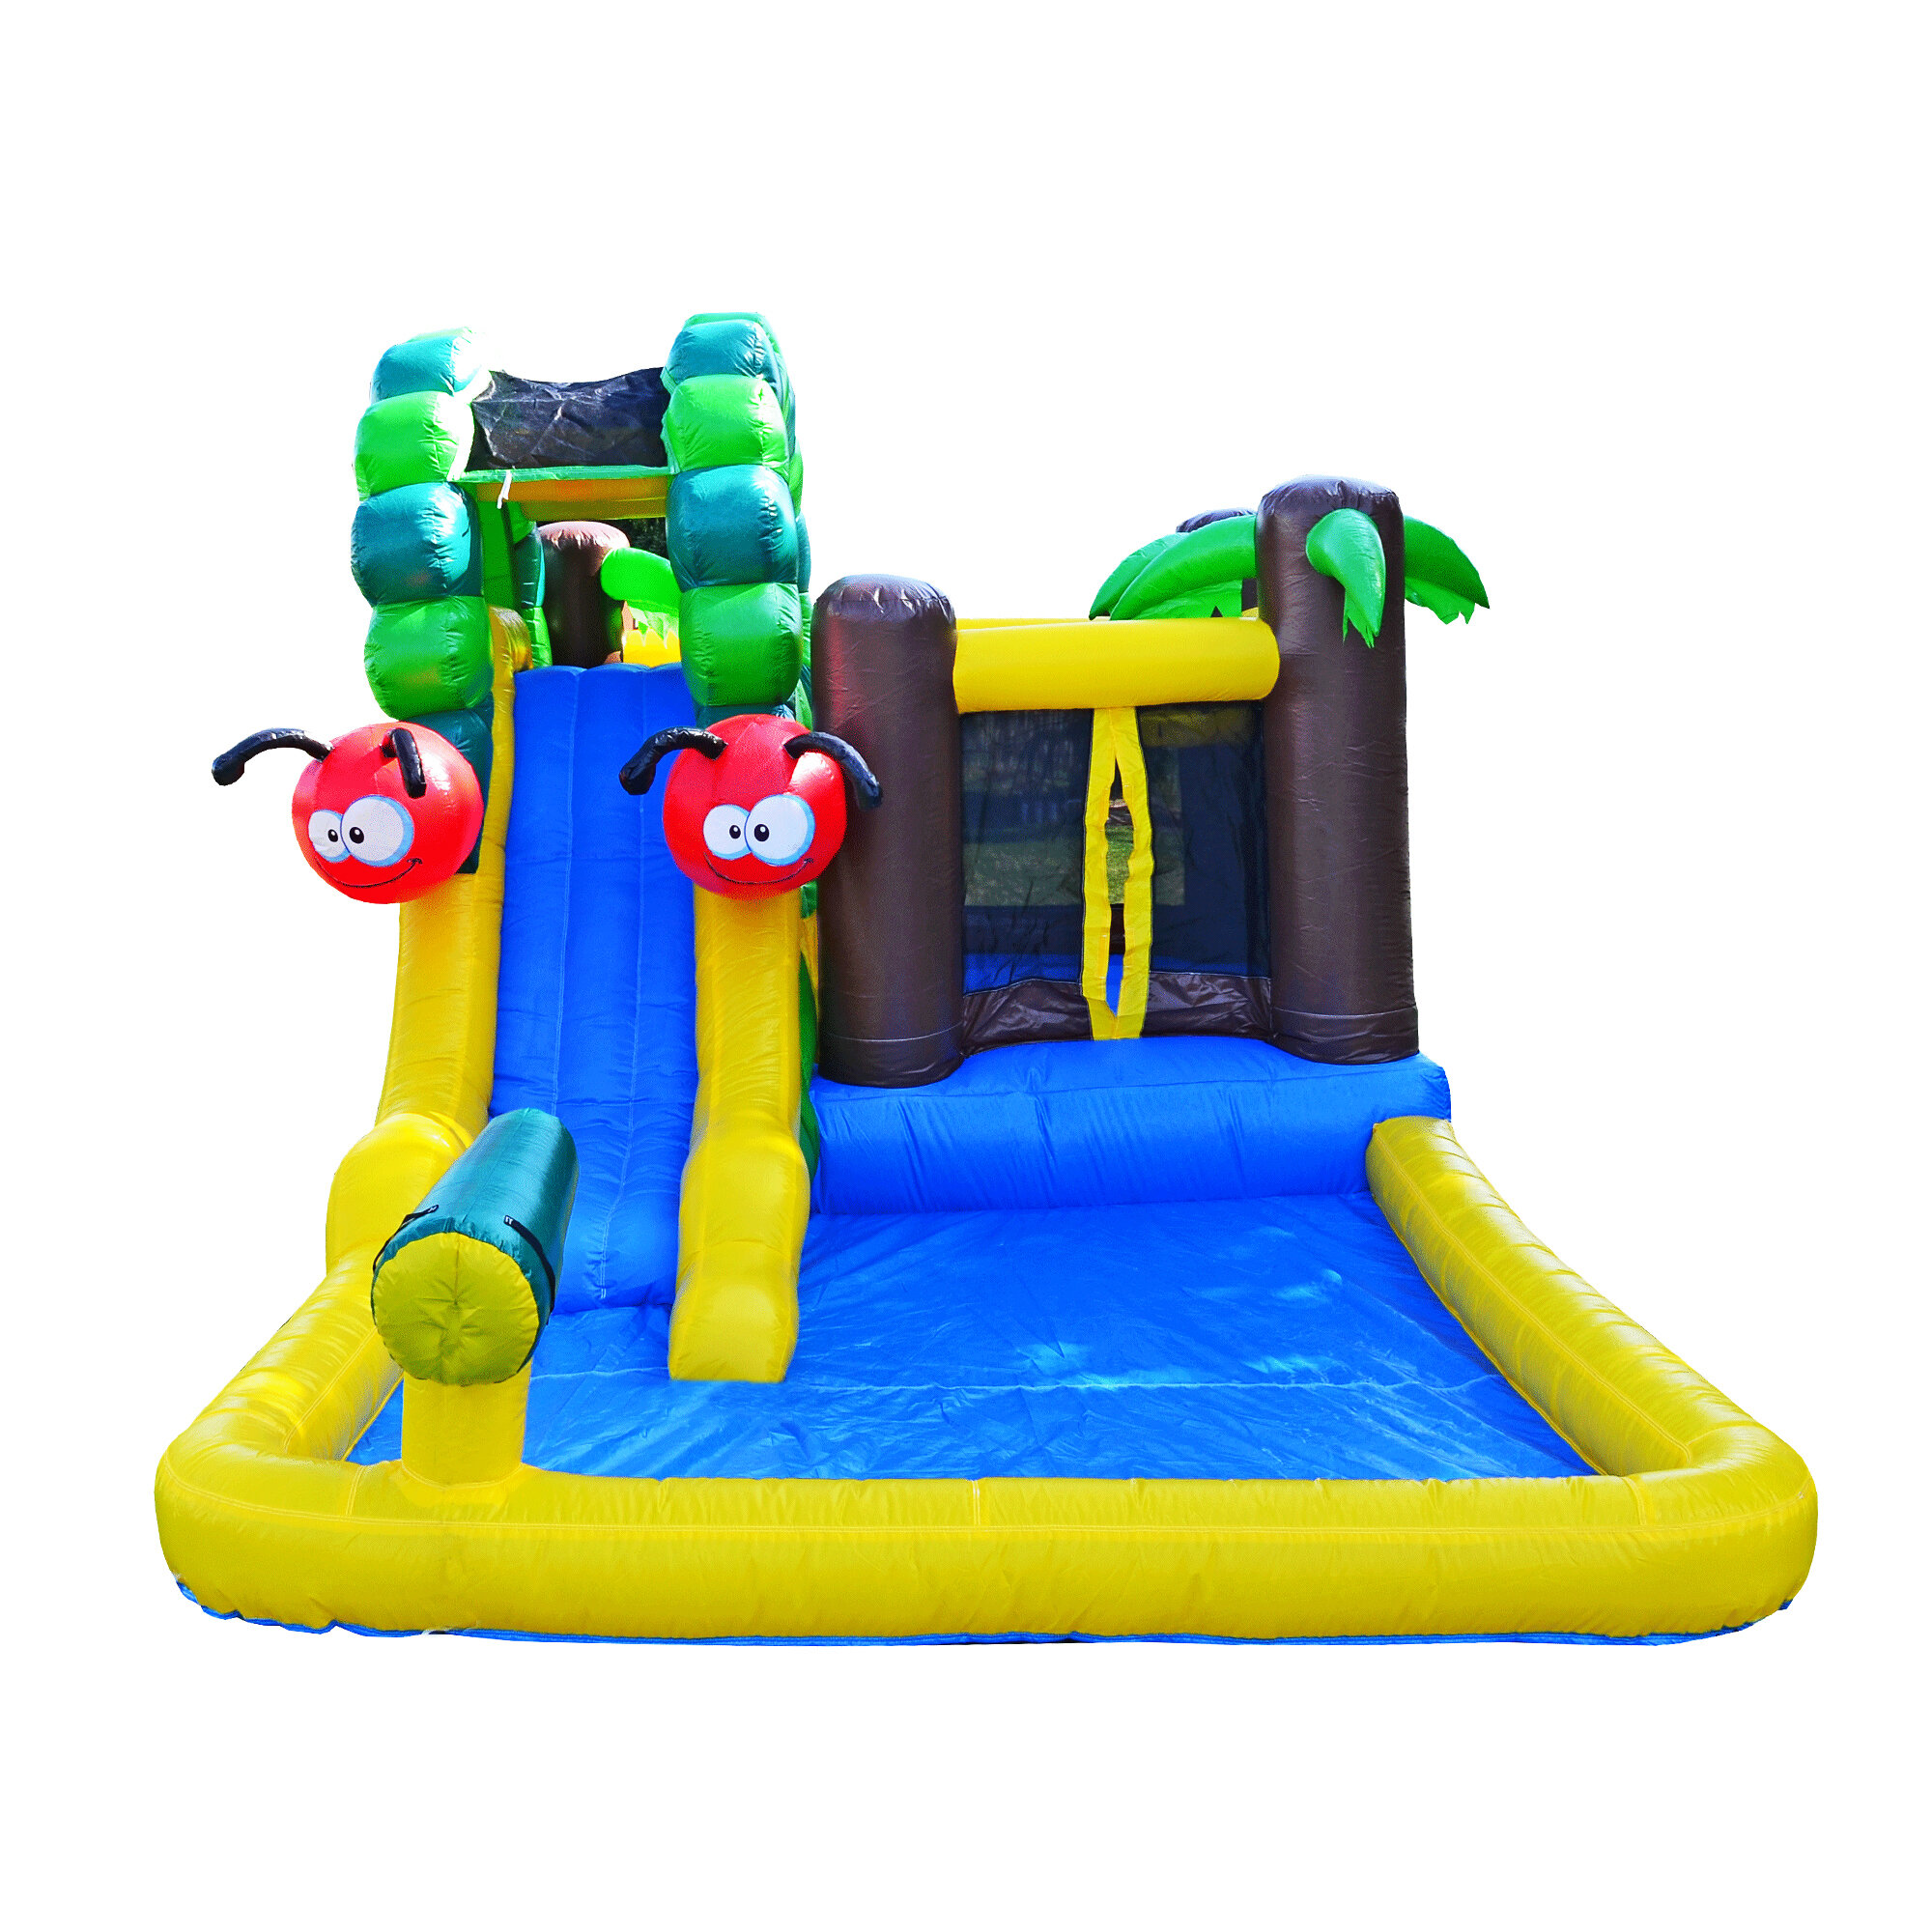 Refurbish W 3l Blower For Inflatable Bounce House Bouncer Or Water